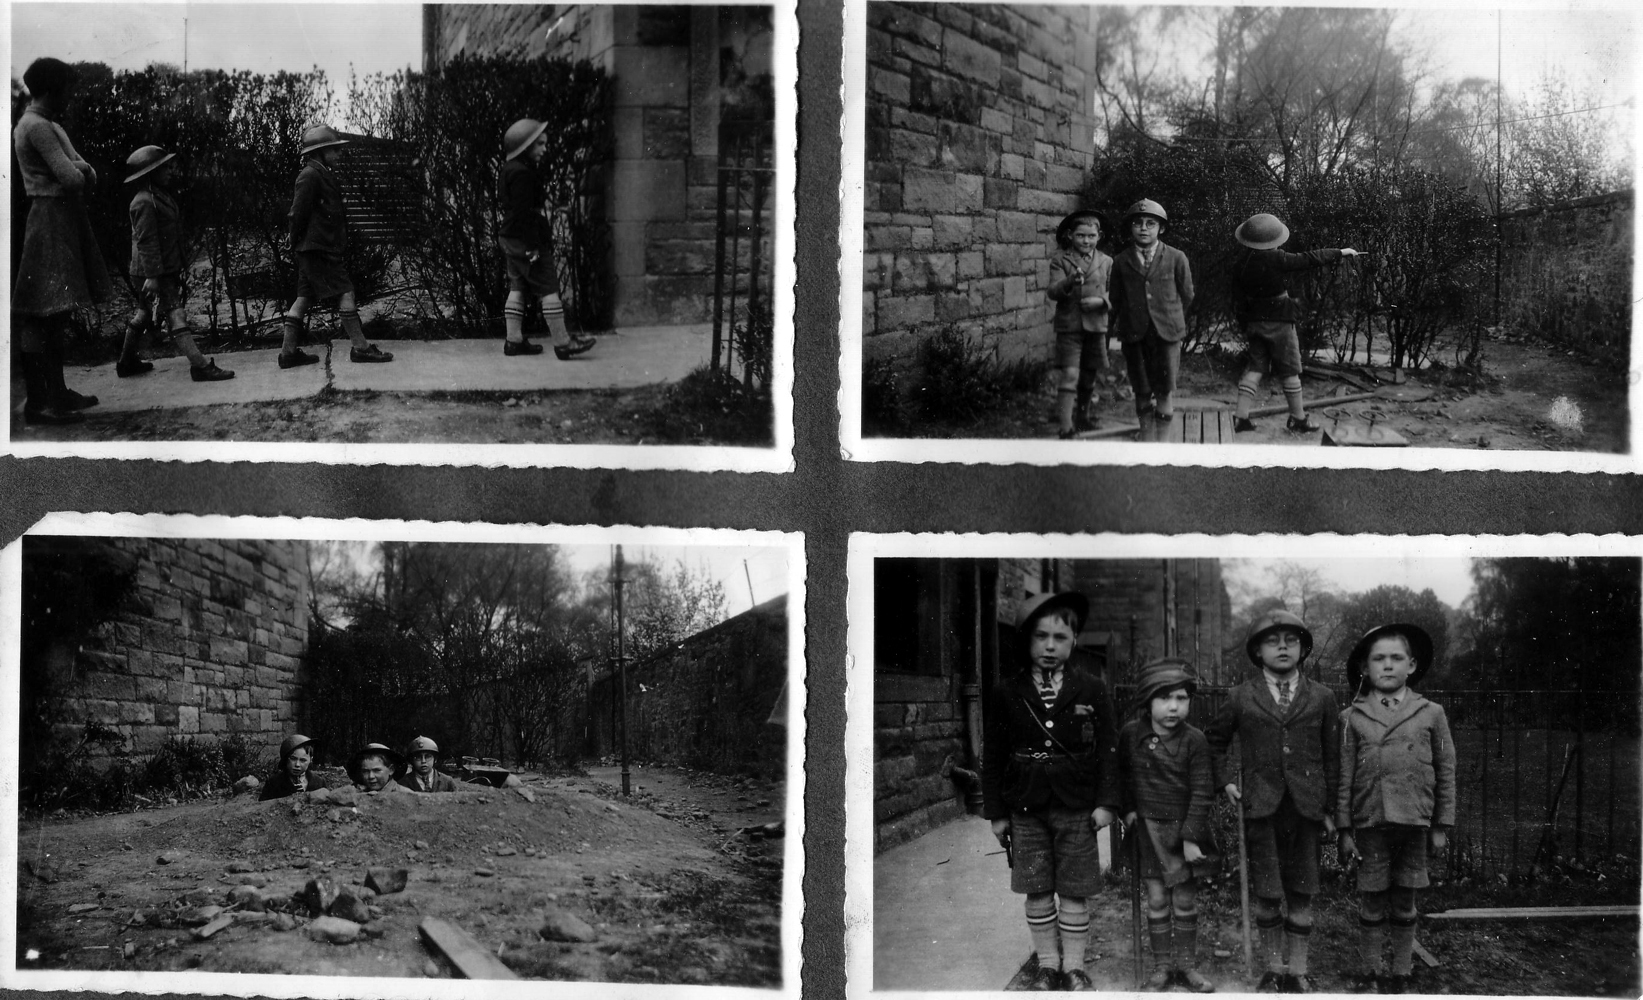 Four Boys Playing At Being Soldiers 1930s